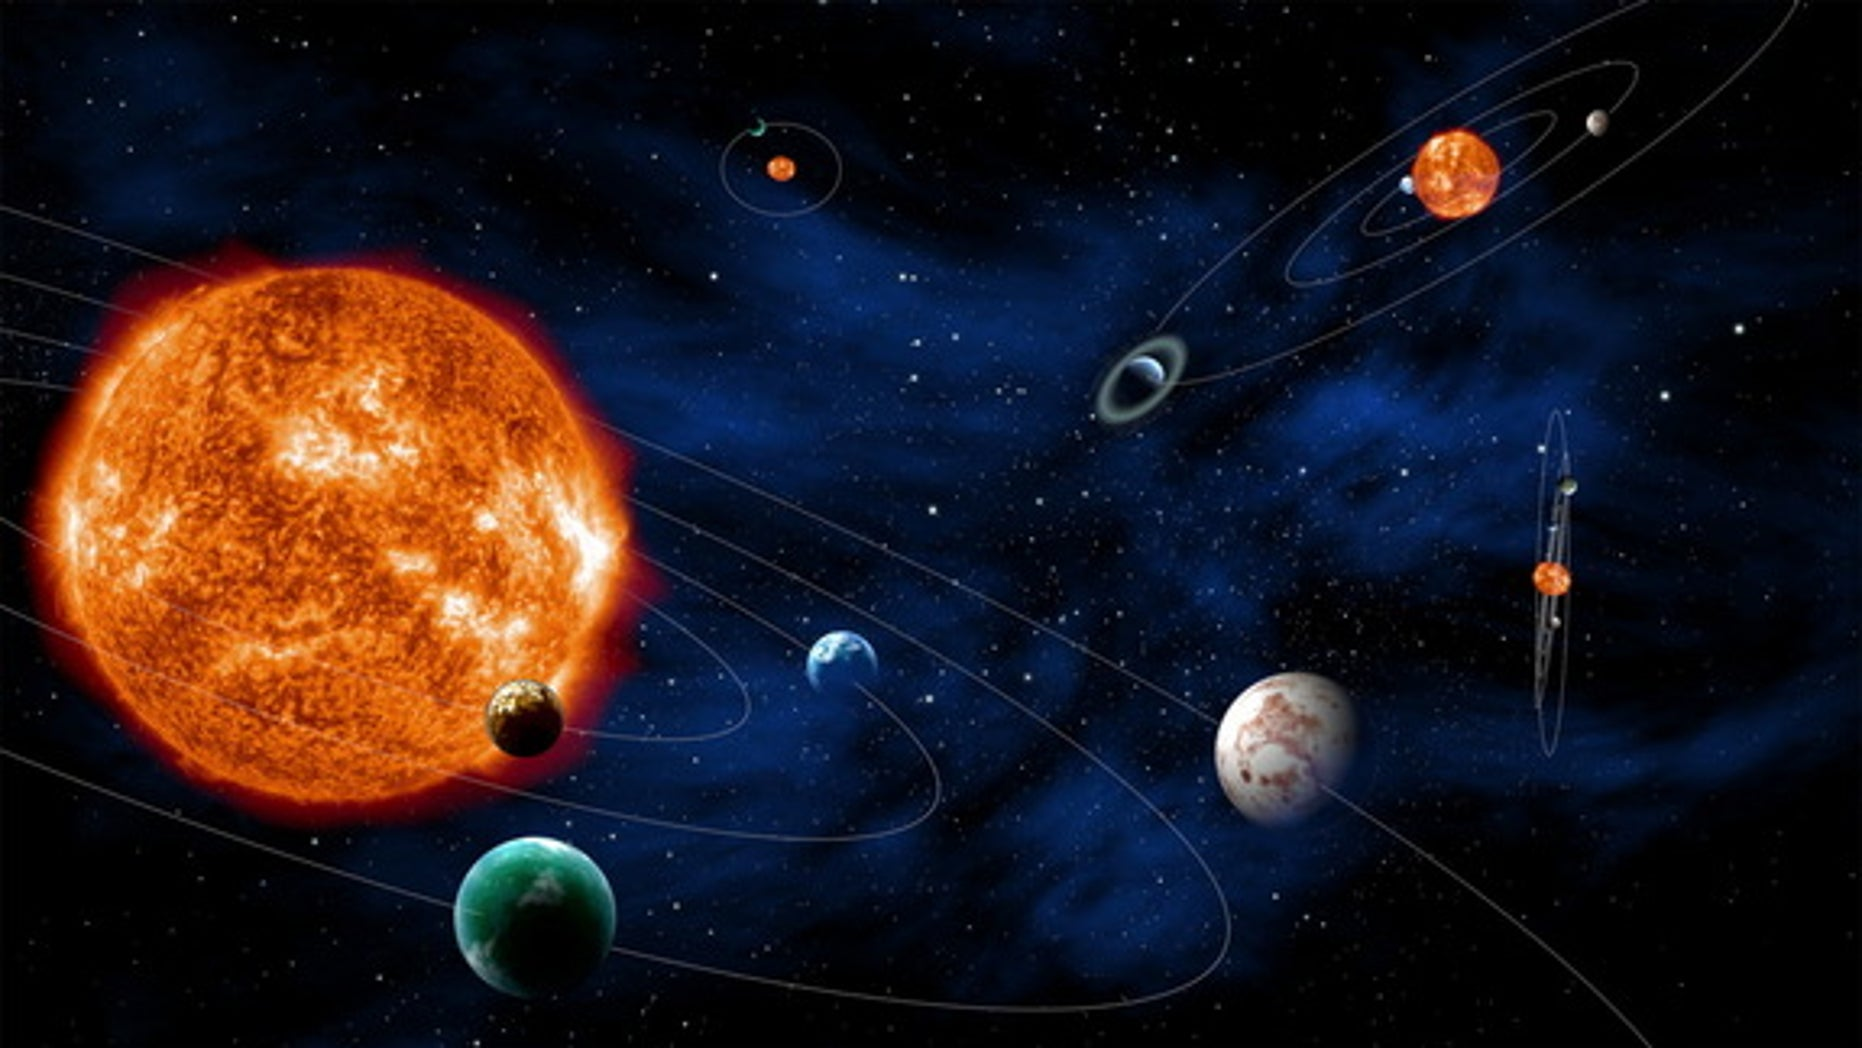 The PLAnetary Transits and Oscillations of stars (PLATO) mission will identify and study thousands of exoplanetary systems, with an emphasis on discovering and characterising Earth-sized planets and super-Earths.